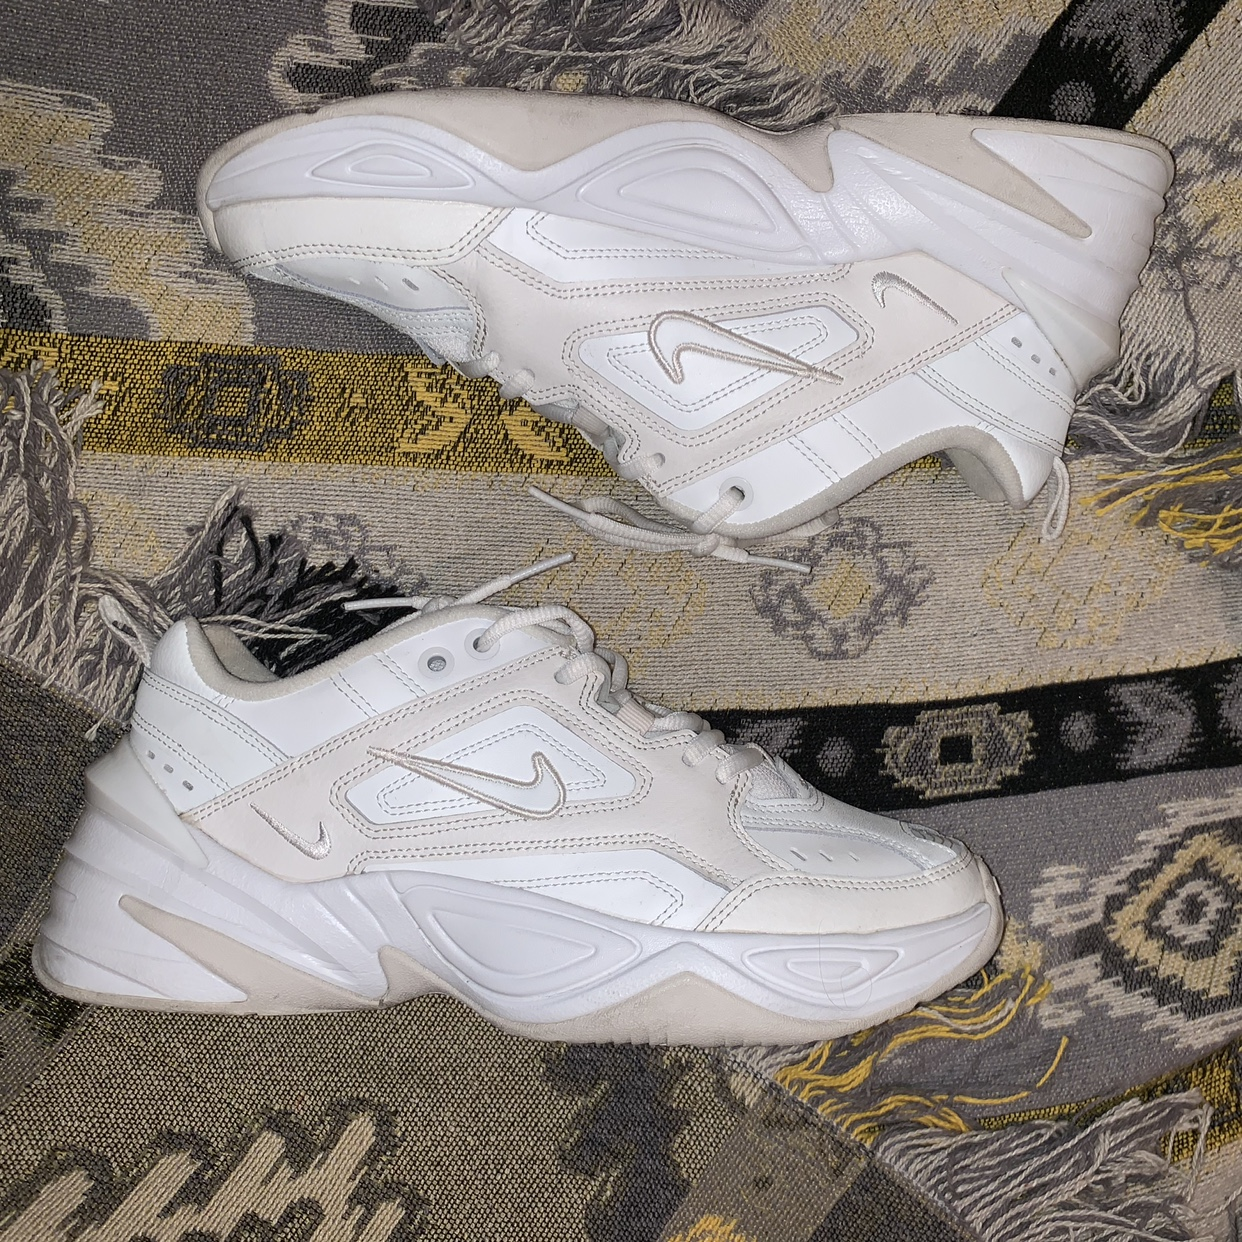 White and nude Nike Tekno sneakers. The